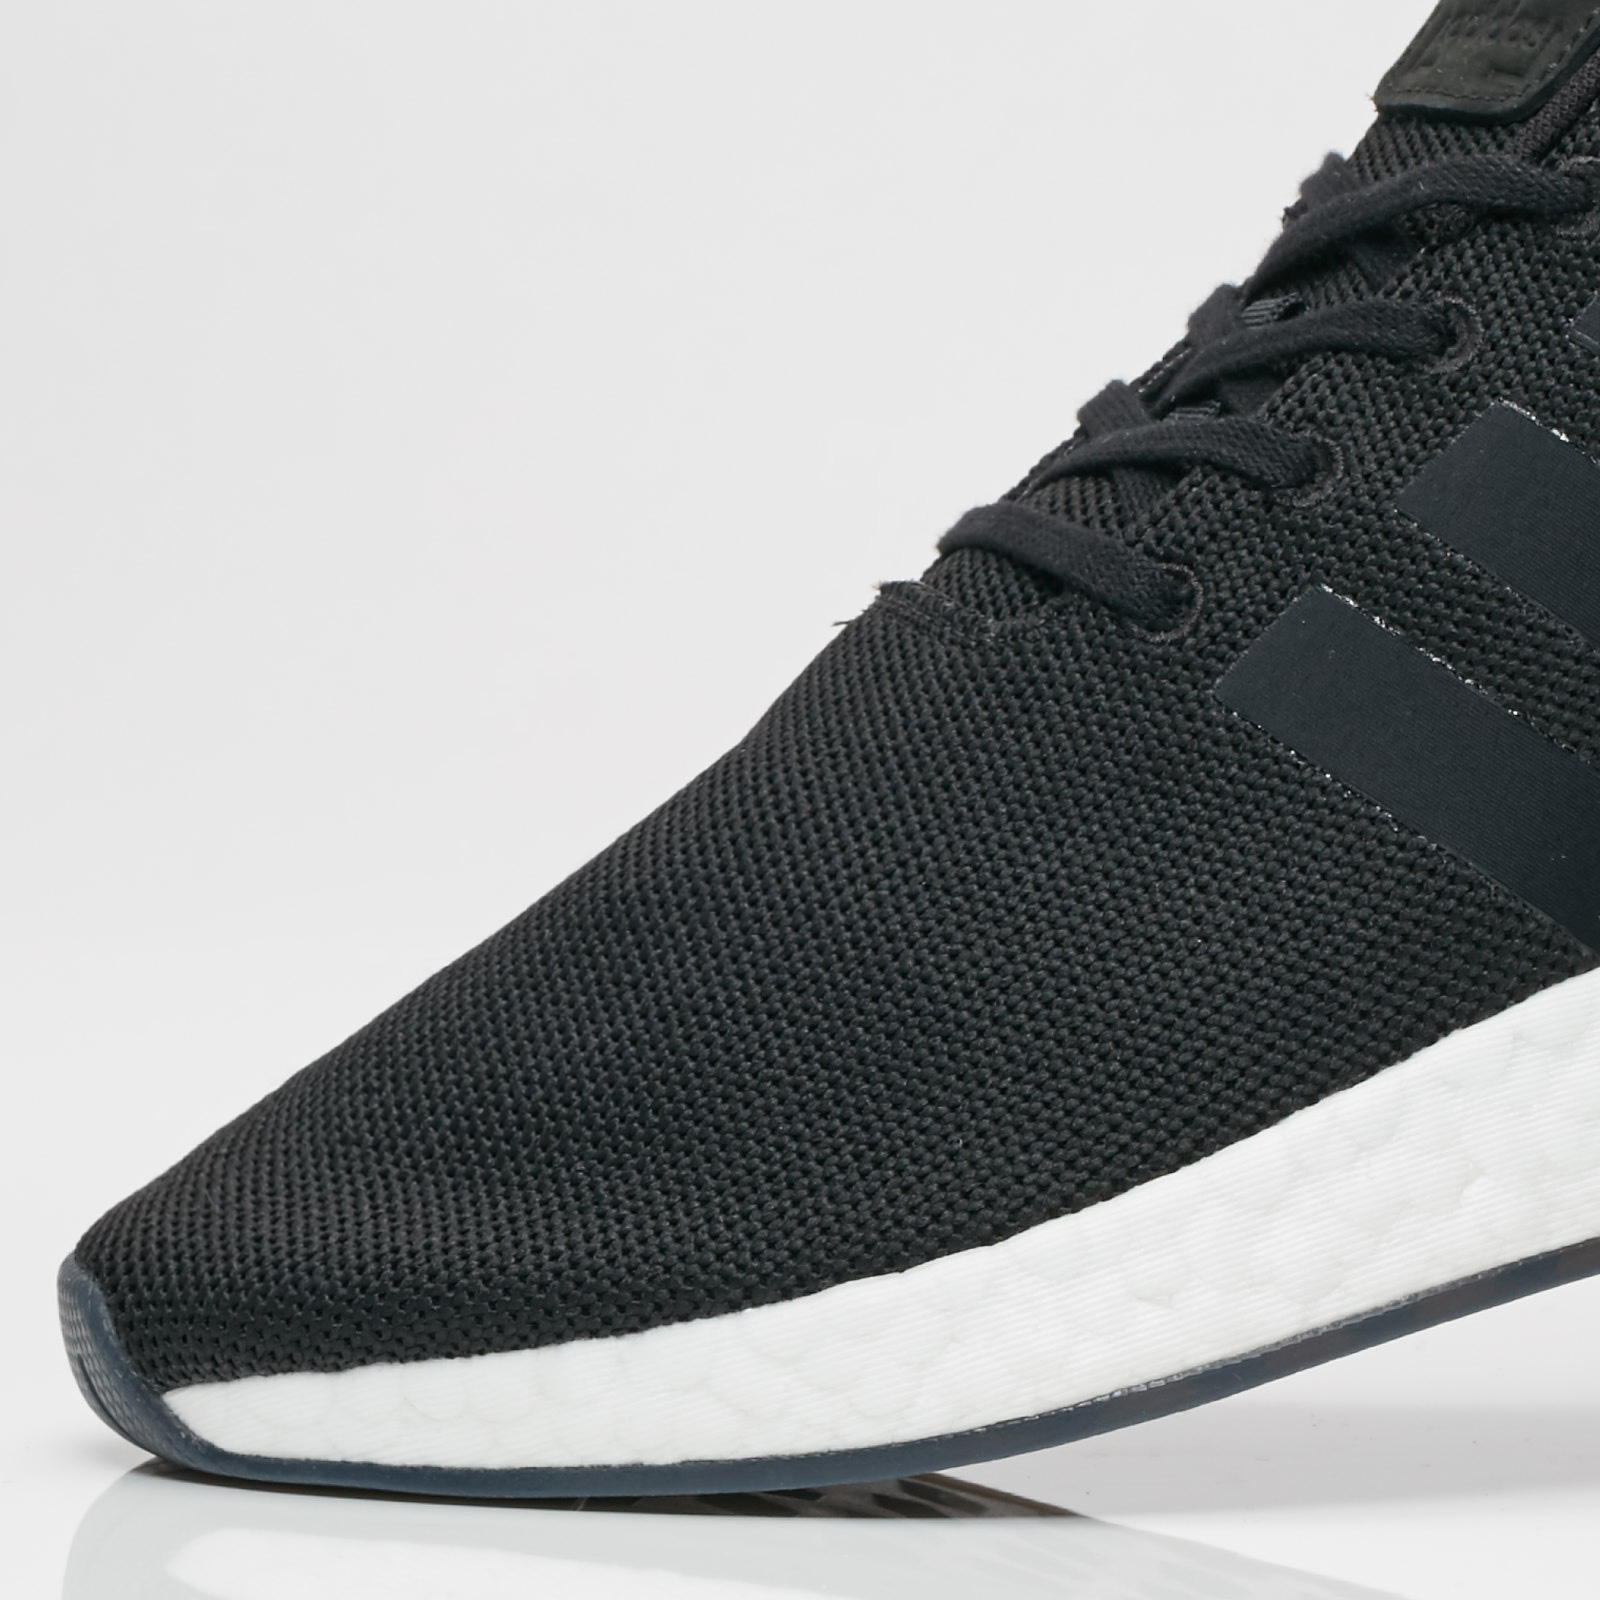 outlet store 9a07e ab85b adidas NMD R2 - Cq2402 - Sneakersnstuff | sneakers ...